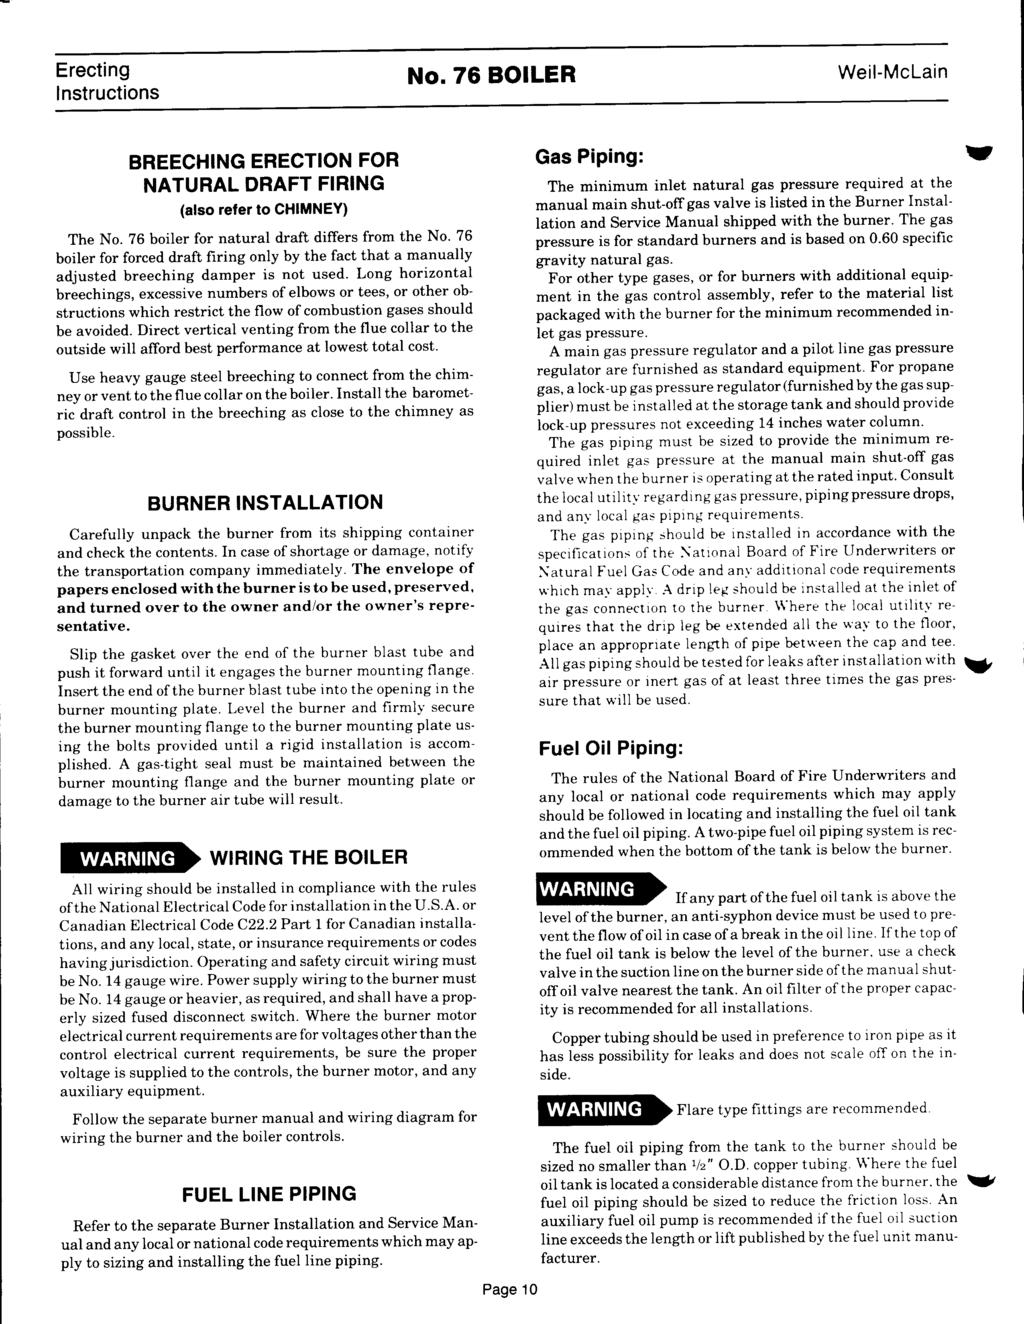 No76 Boiler Erecting Lnstructions Weil Mclain Forced Draft Columbia Oil Burner Wiring Diagram No 76 Boler Breechng Erecton For Natural Frng Also Refer To Chmney